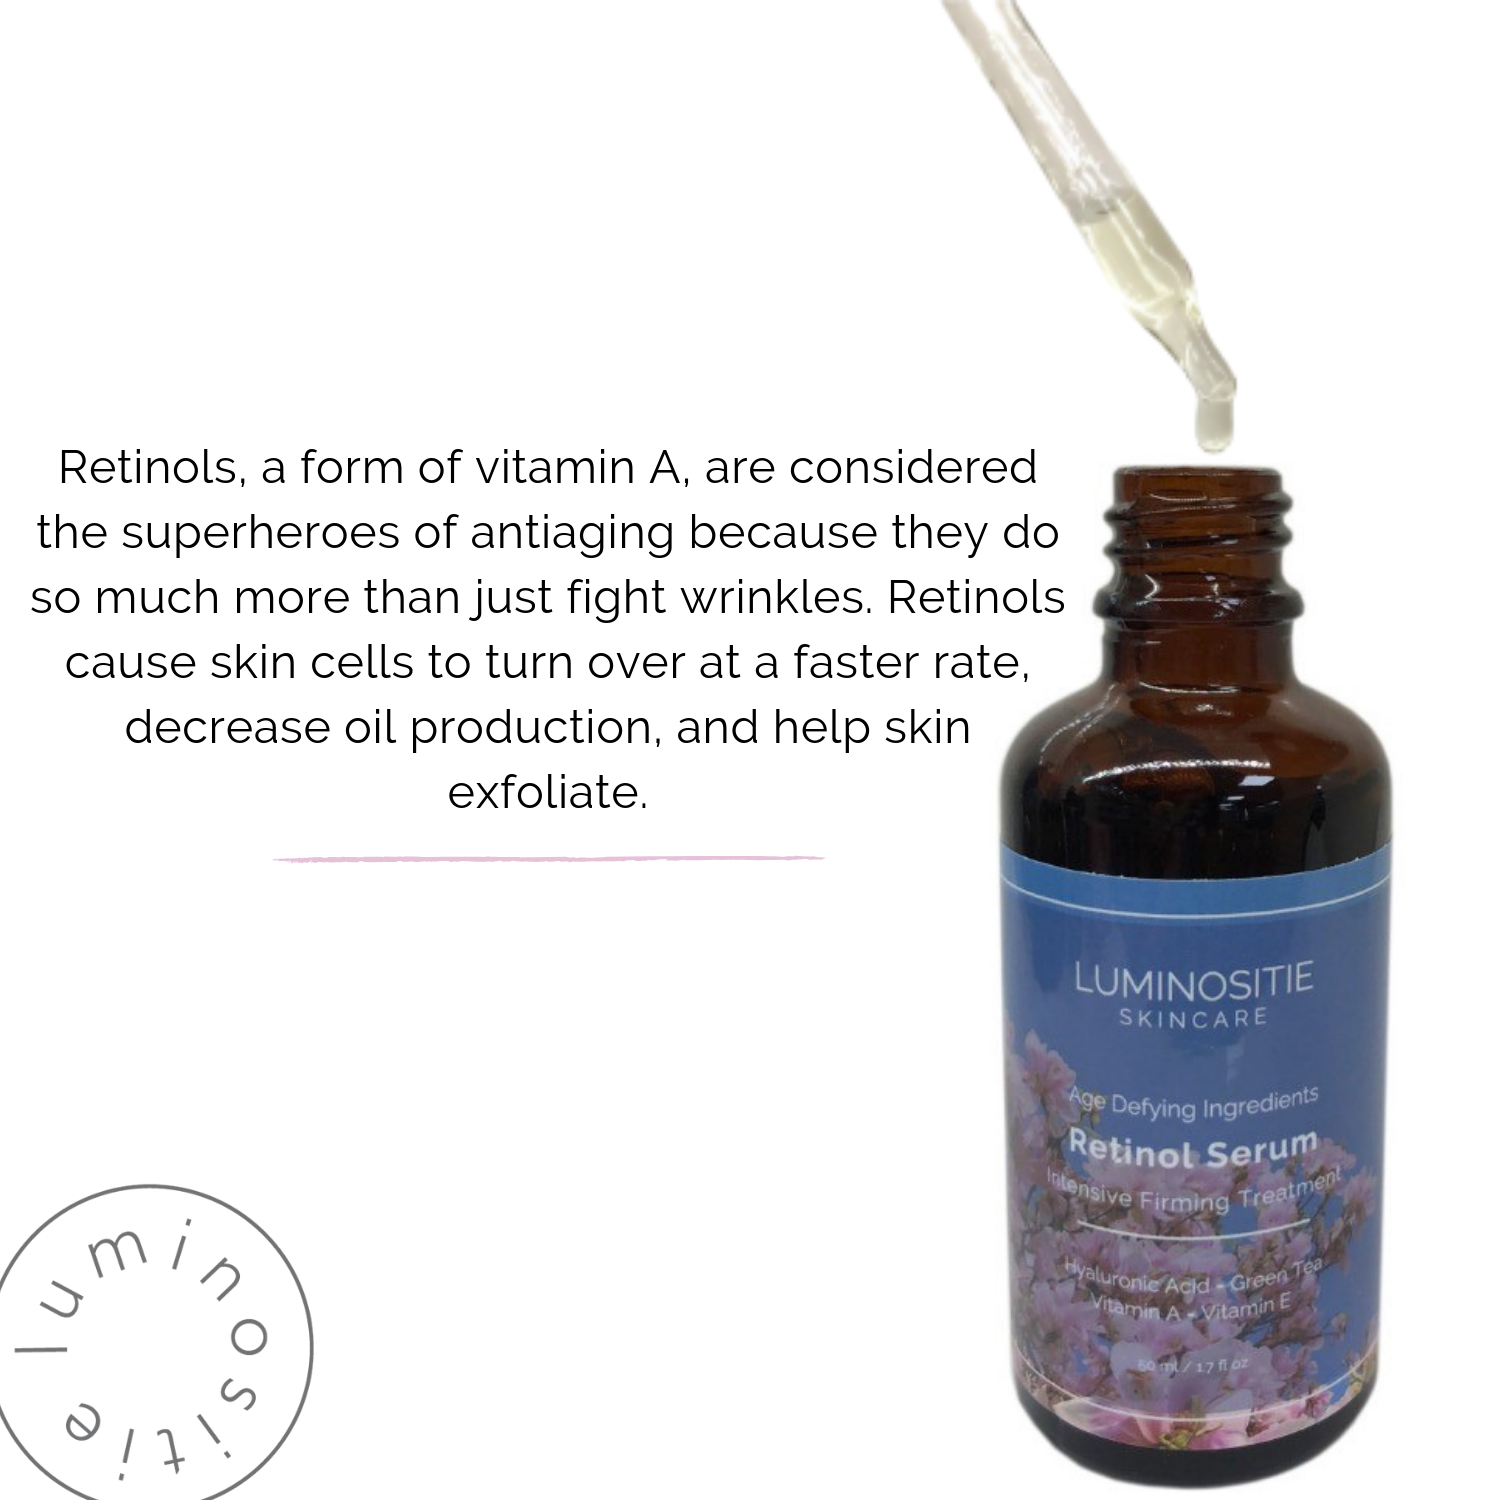 Retinol Serum (Vitamin A) - Luminositie